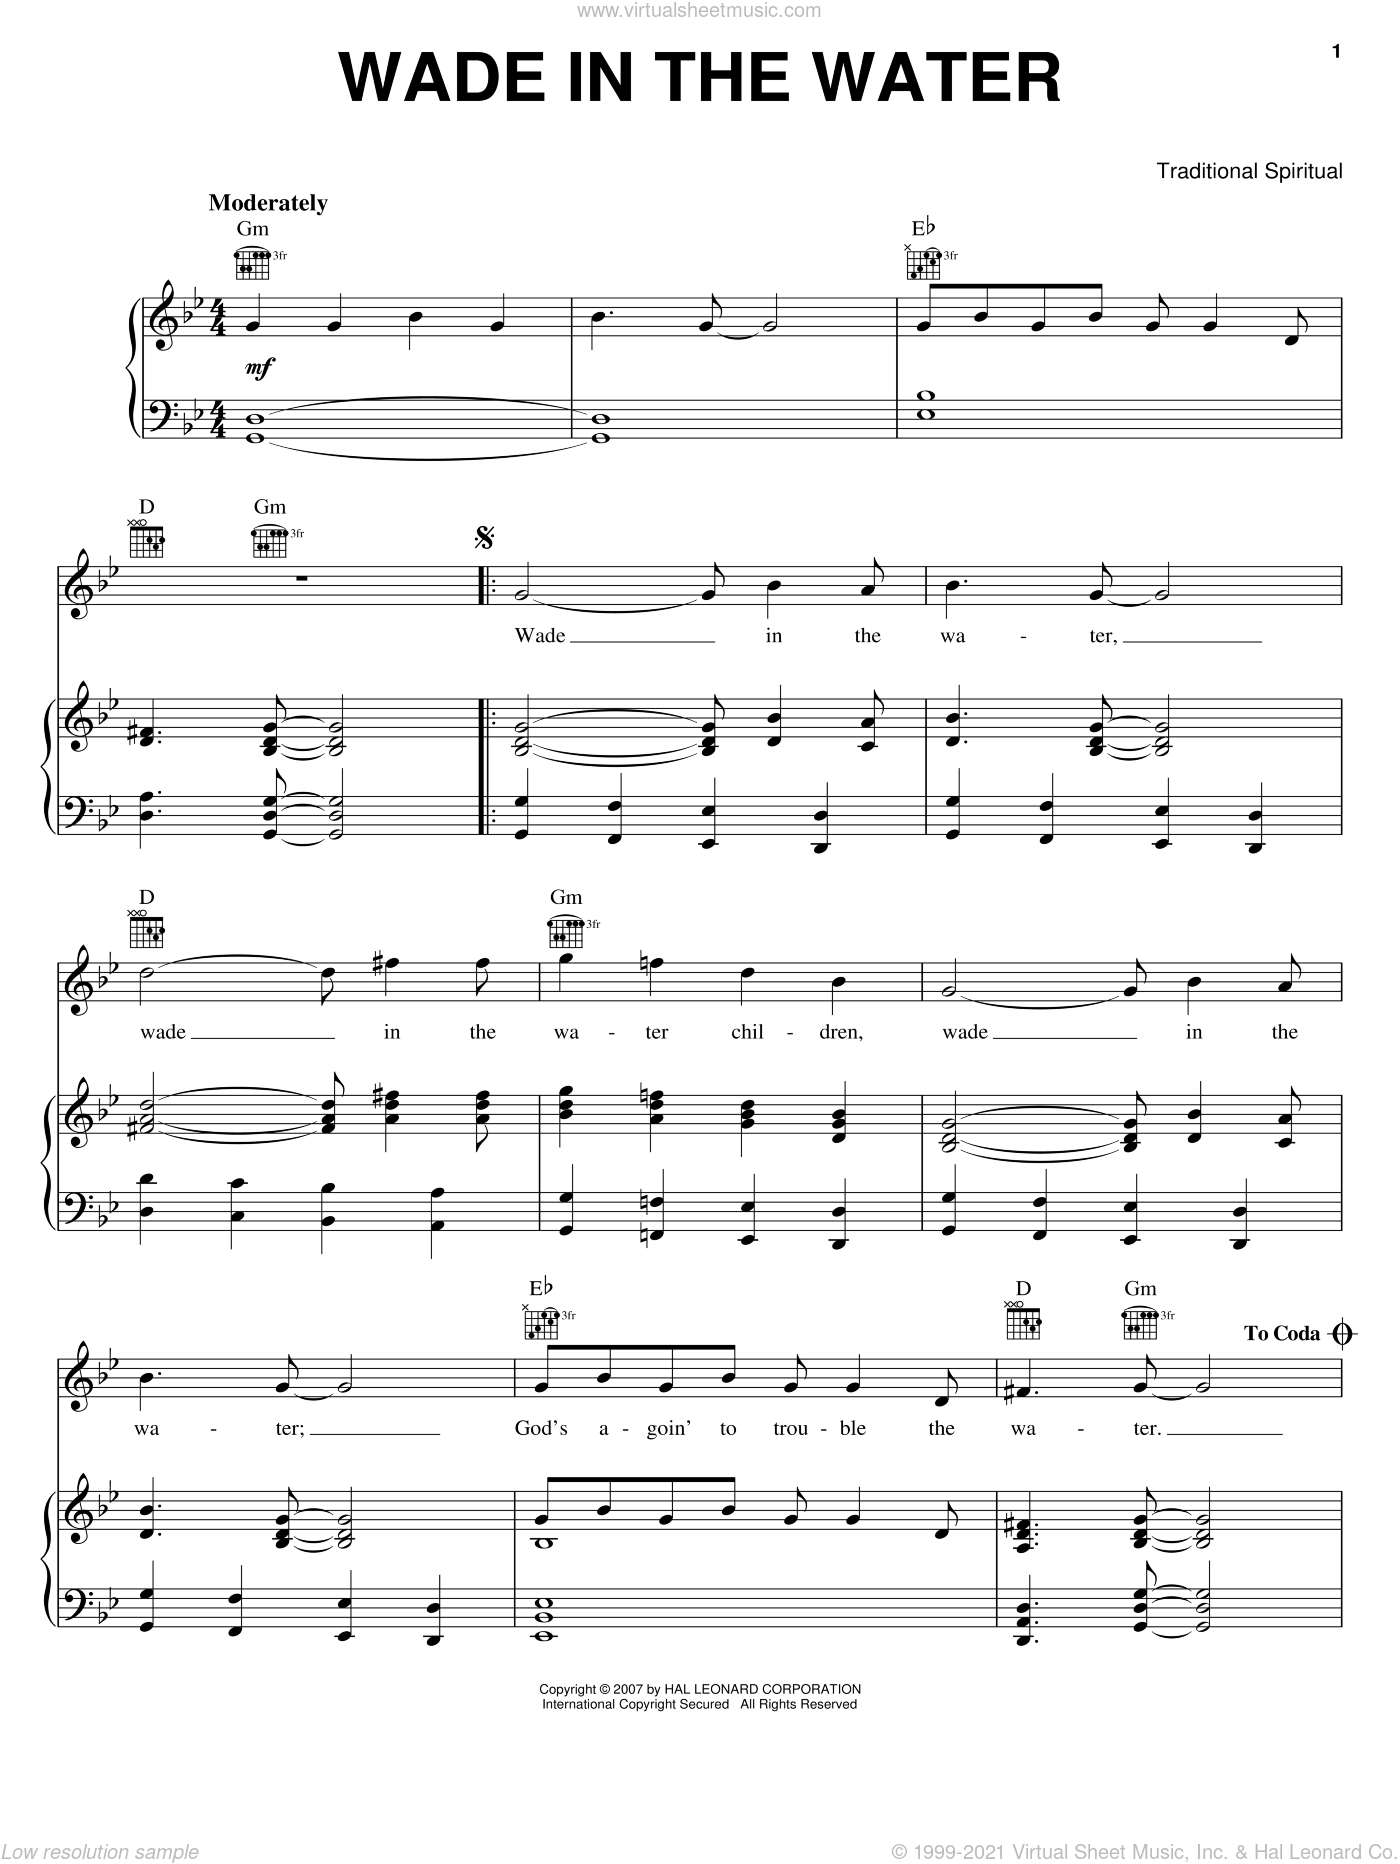 Wade In The Water sheet music for voice, piano or guitar